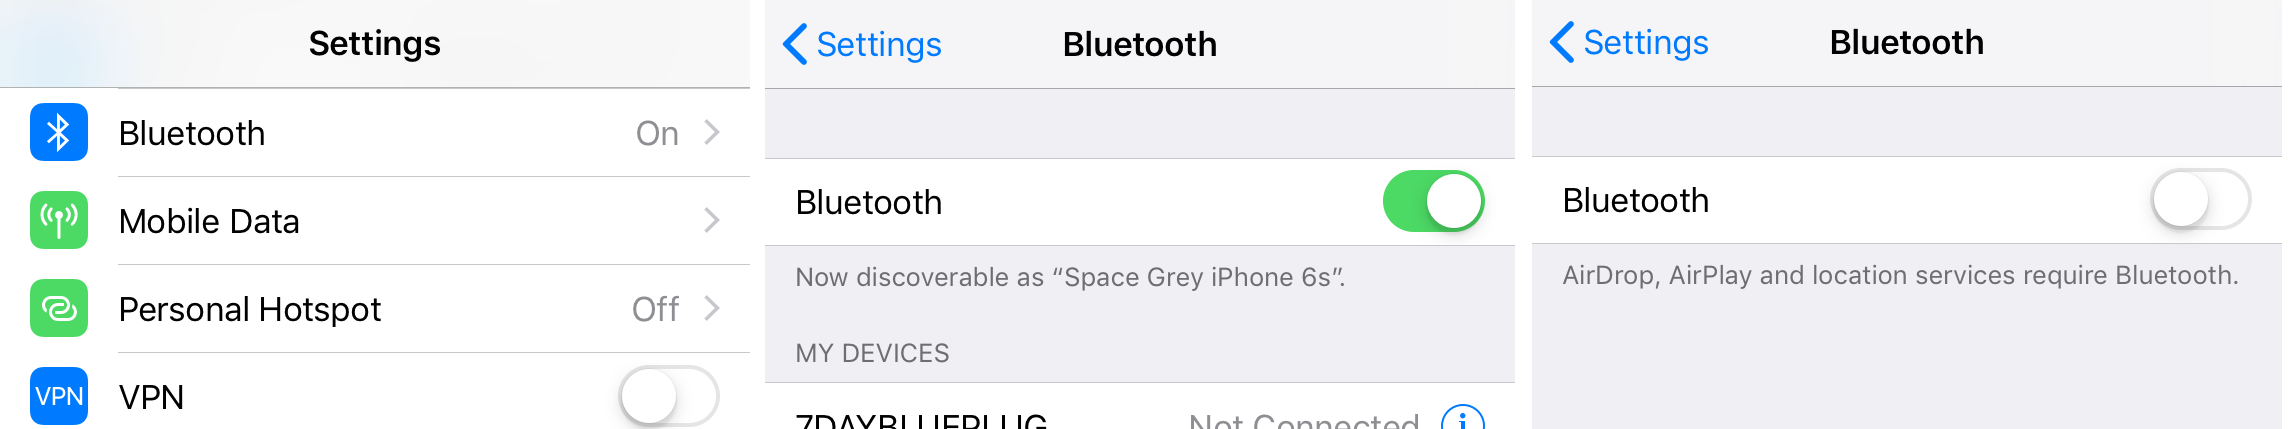 How to switch Bluetooth Off and On in iOS